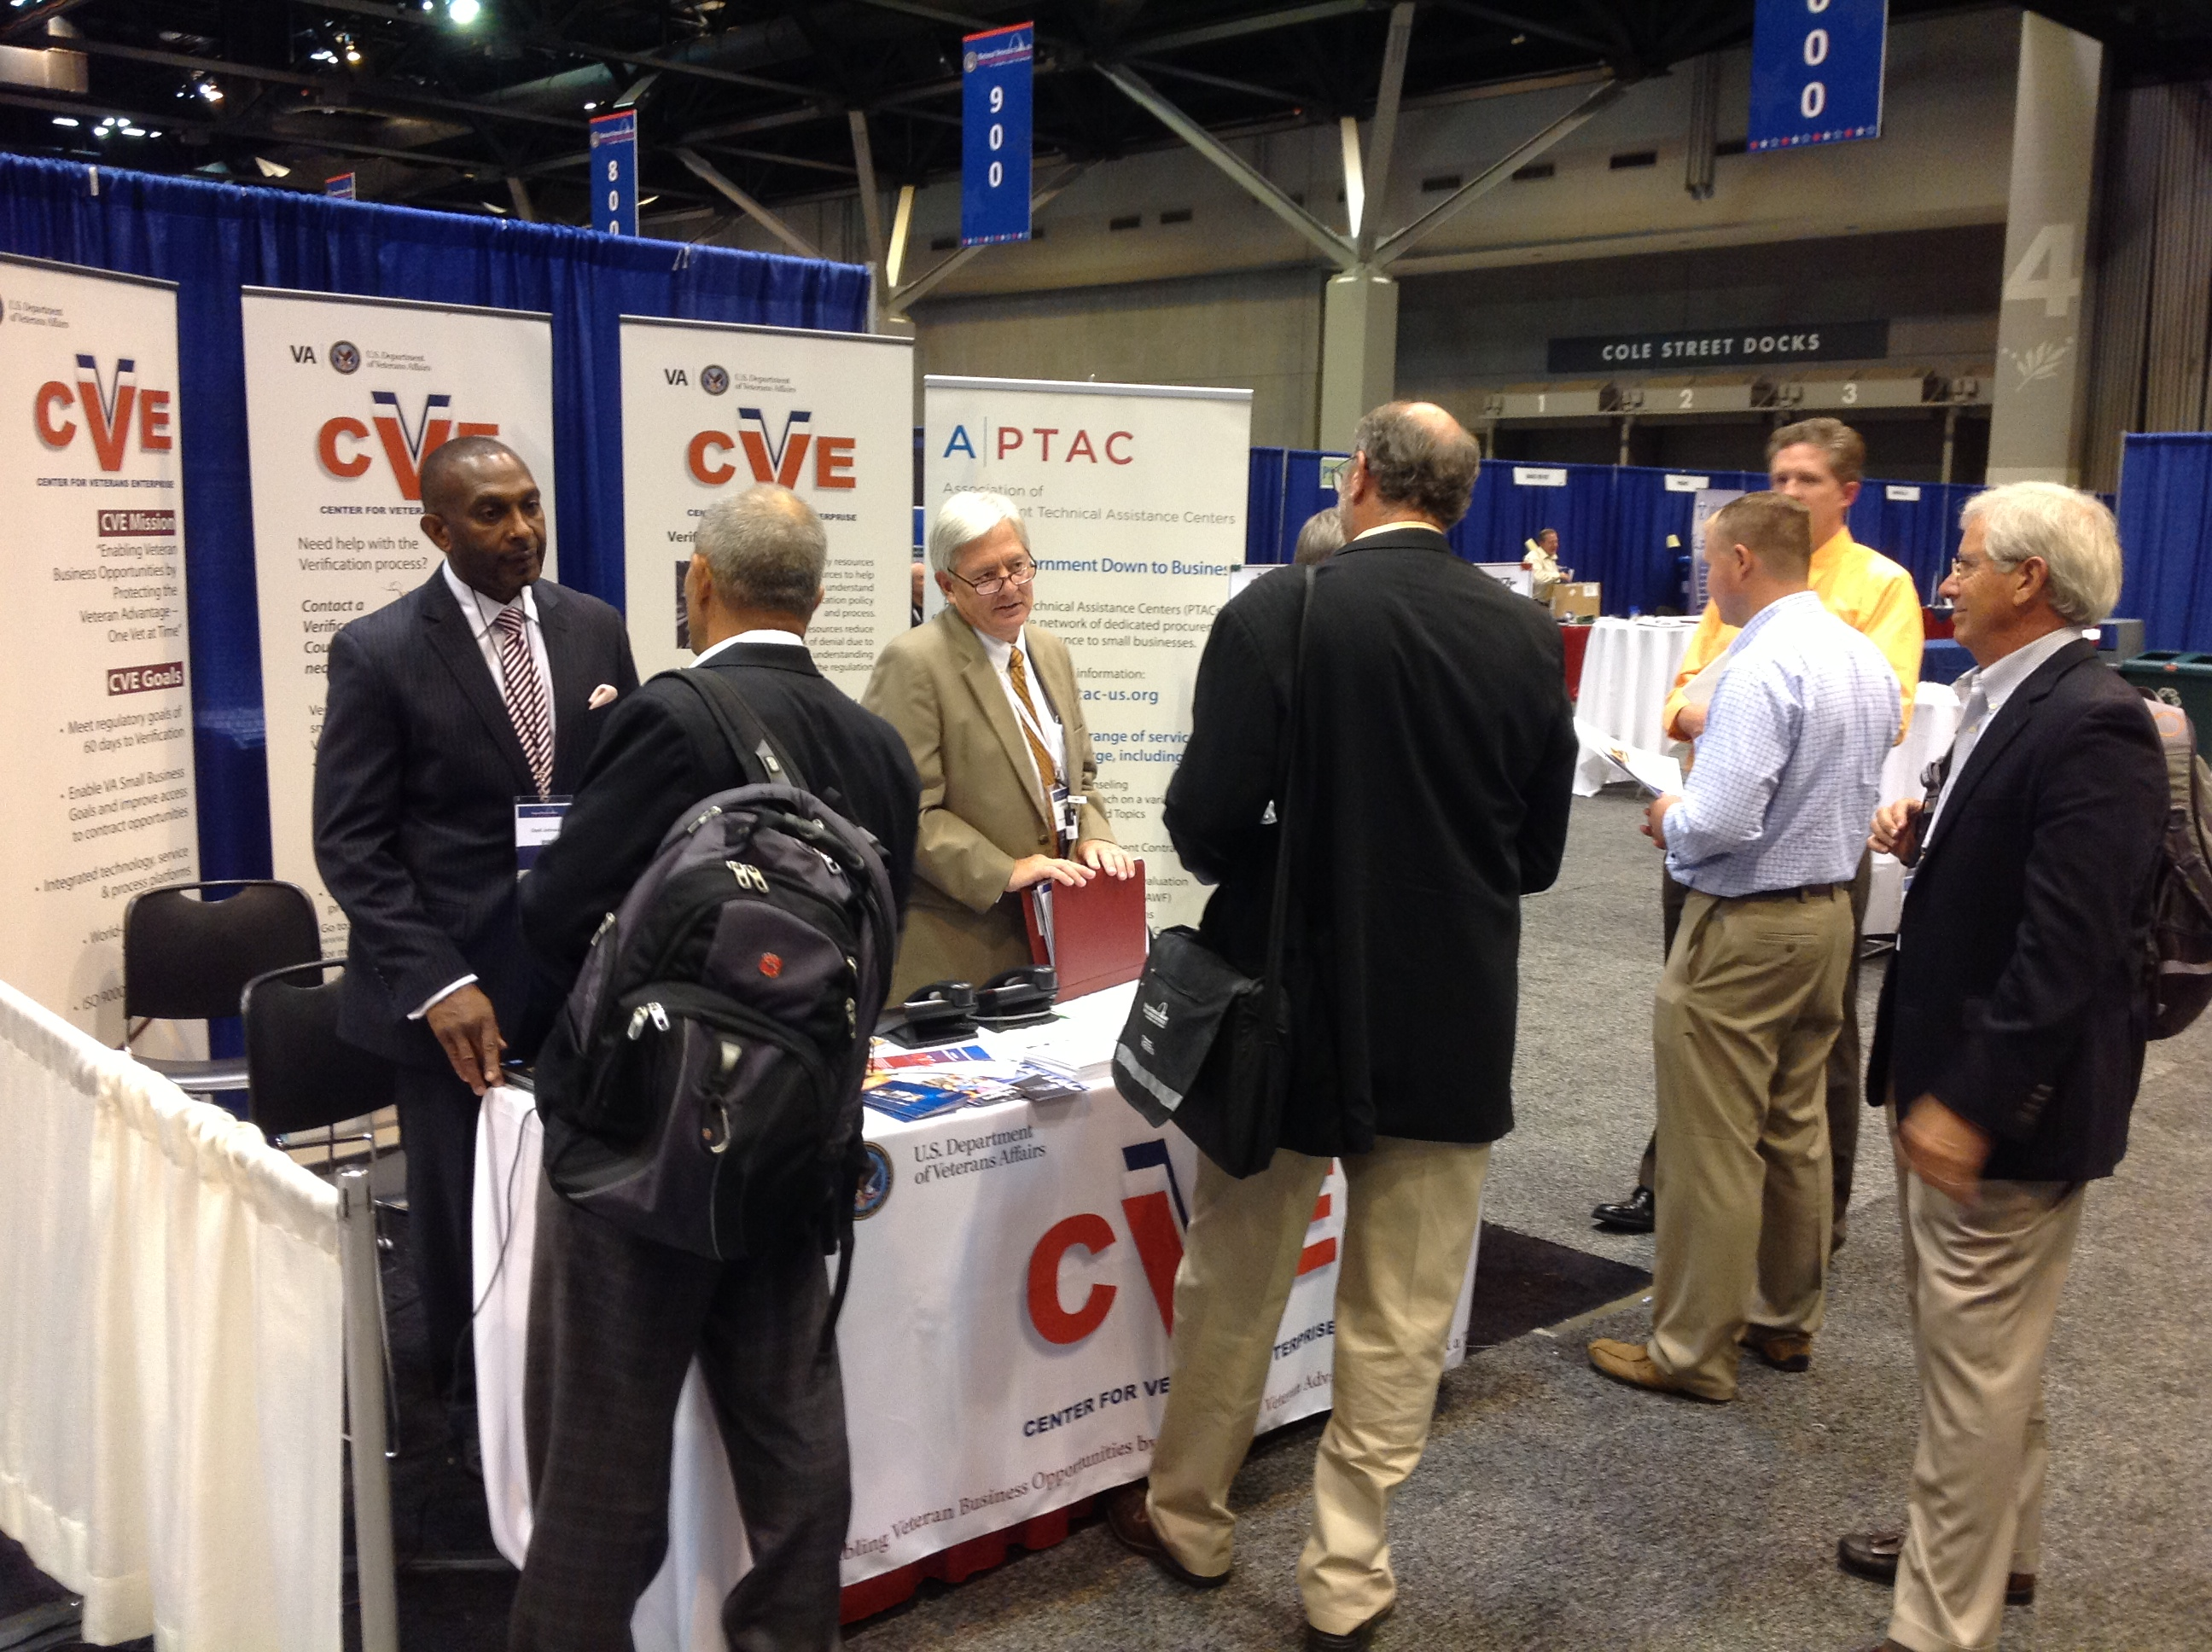 Service disabled veteran owned and veteran owned small business cve booth 2013 xflitez Choice Image